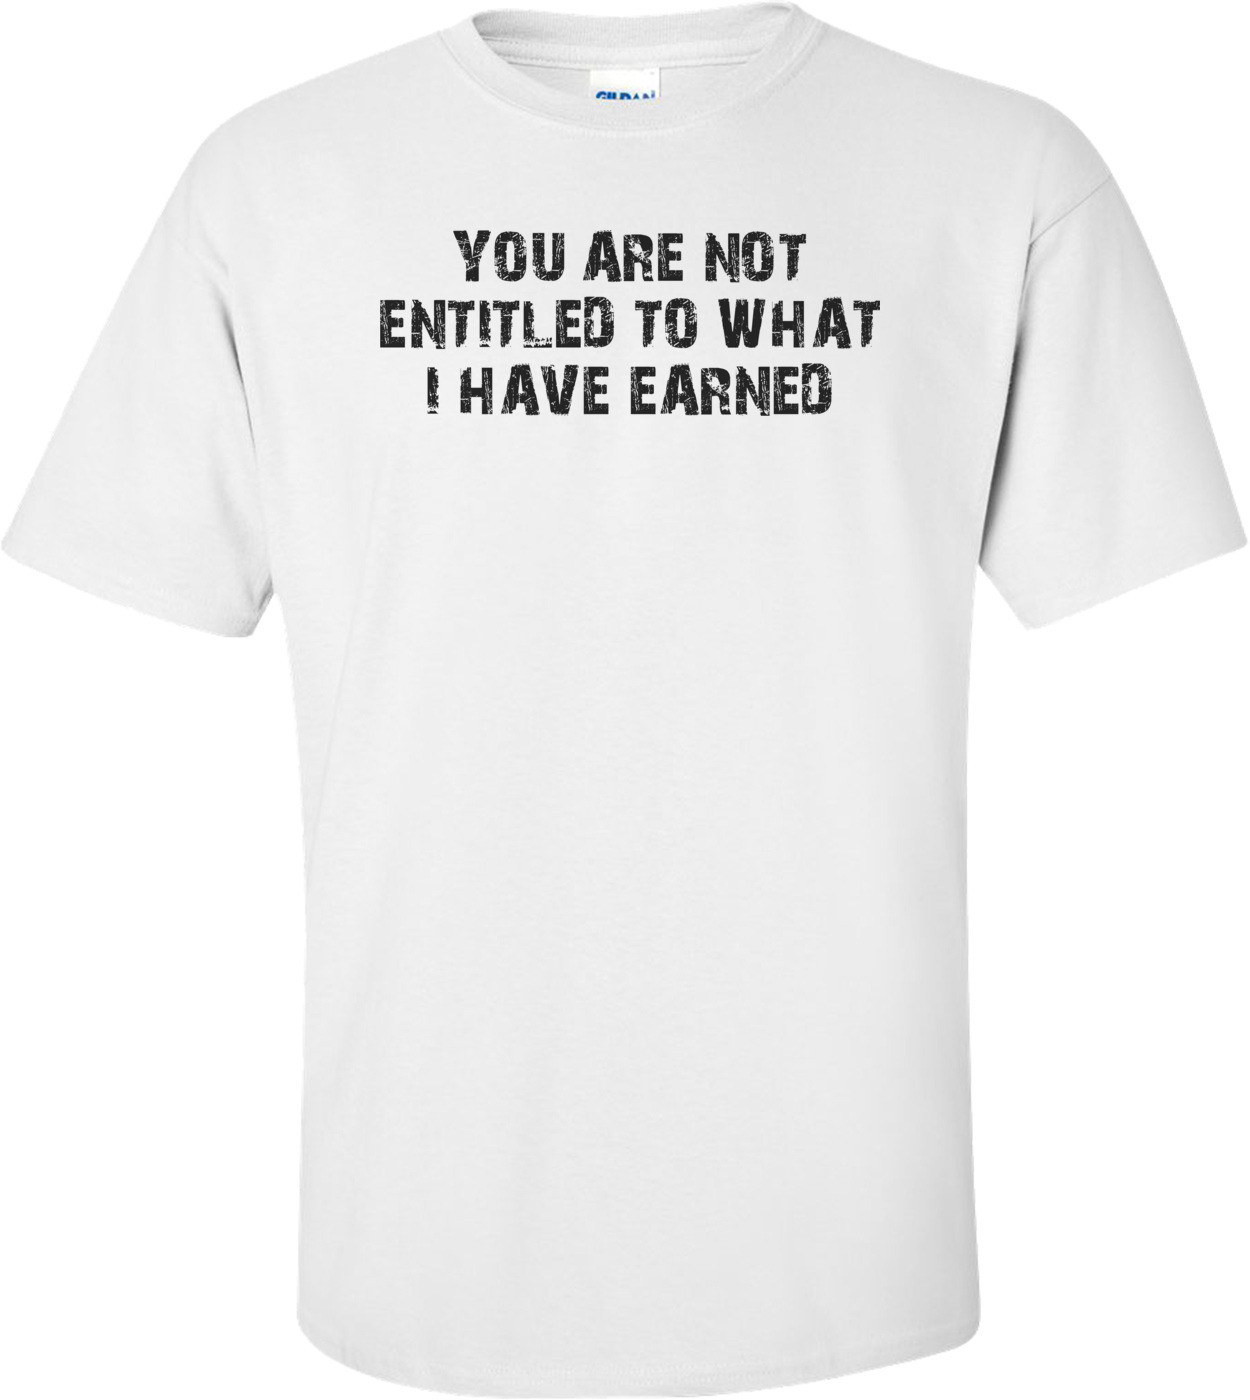 YOU ARE NOT ENTITLED TO WHAT I HAVE EARNED Shirt